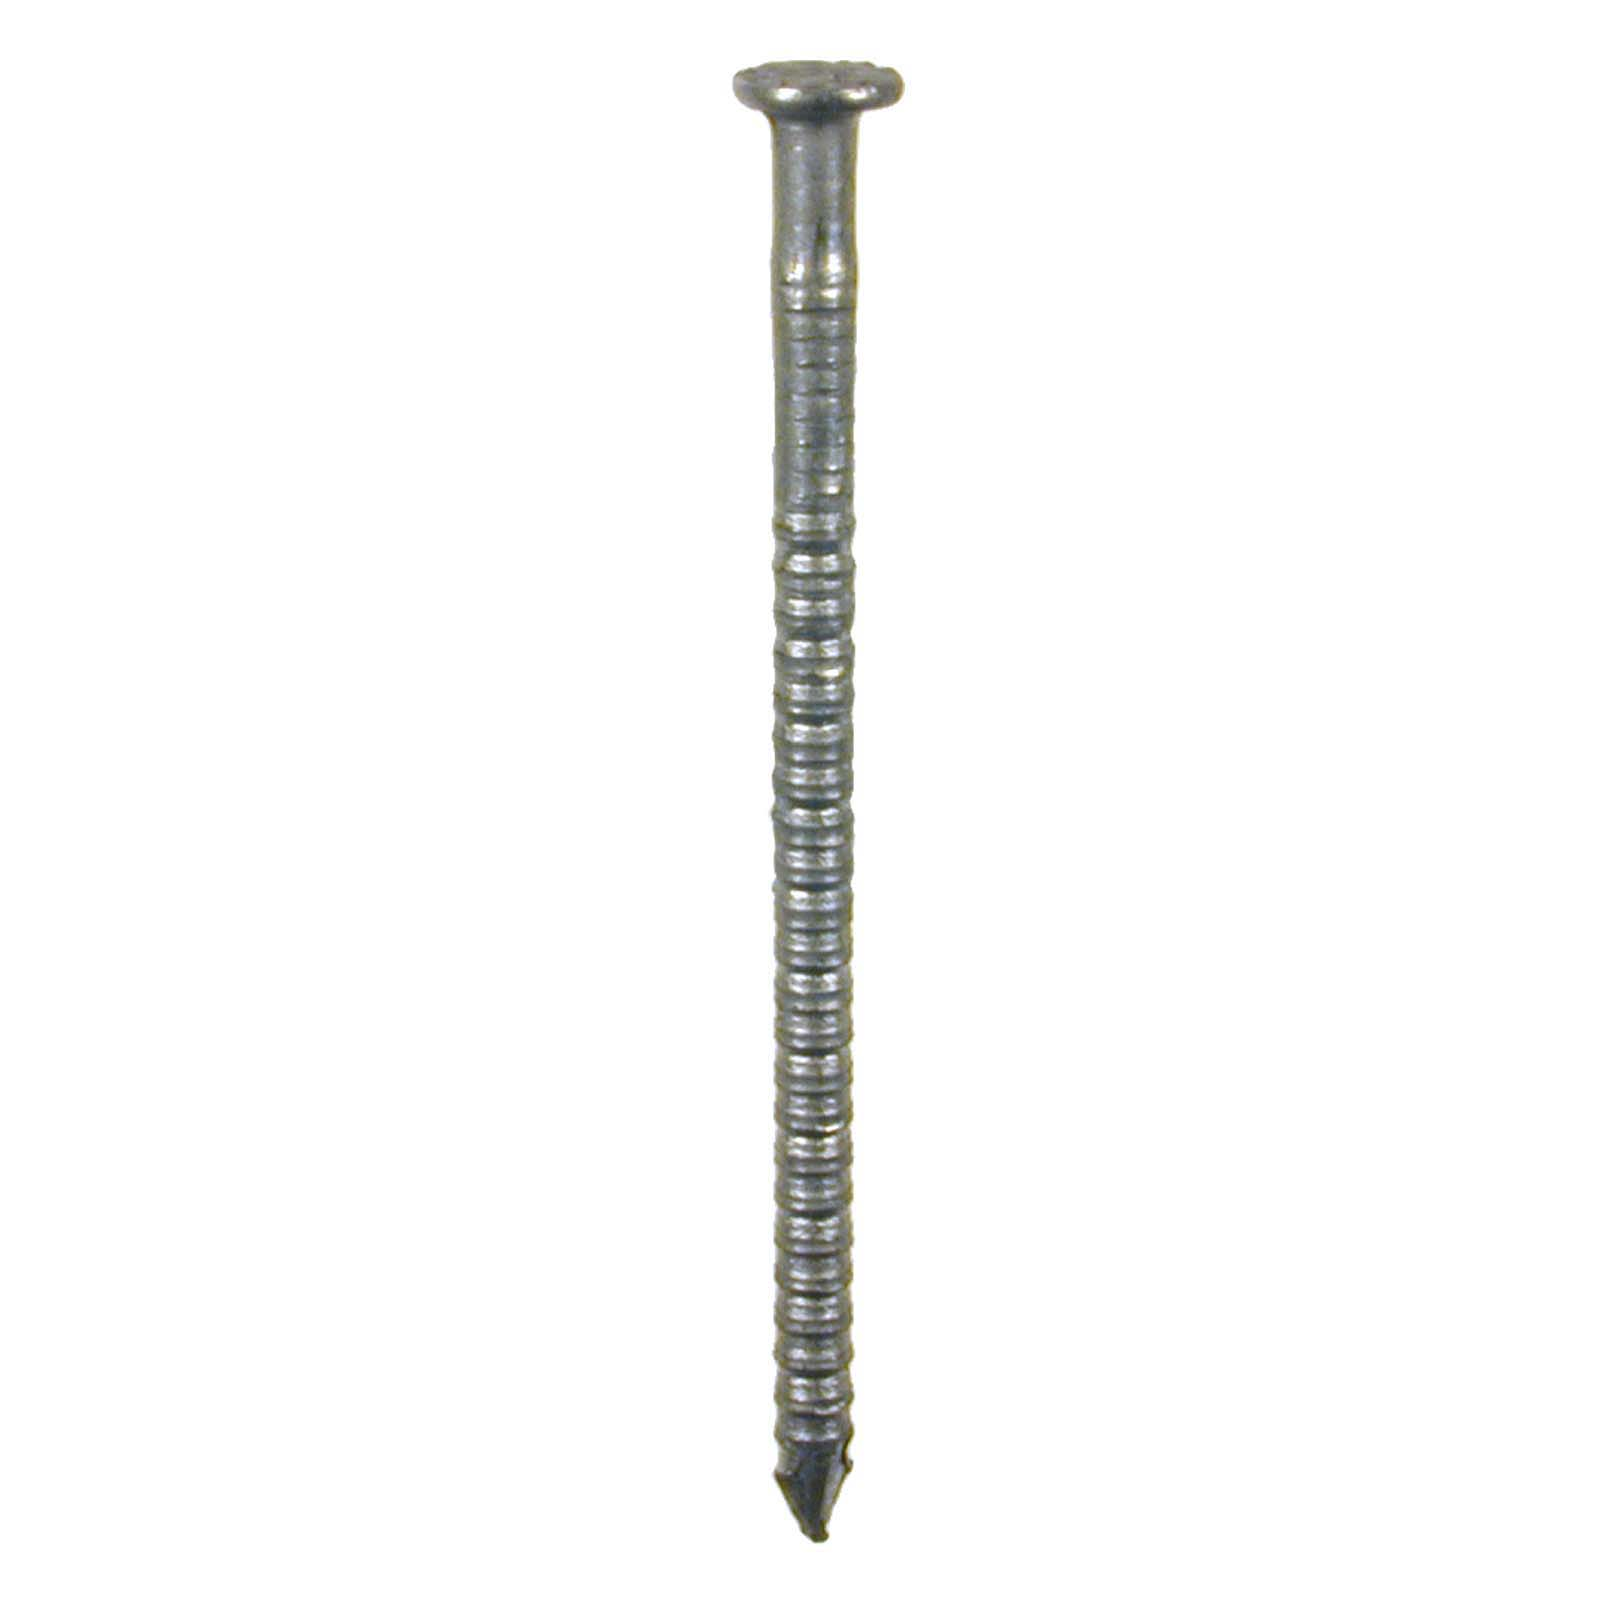 STAINLESS STEEL RING SHANK SIDING NAIL